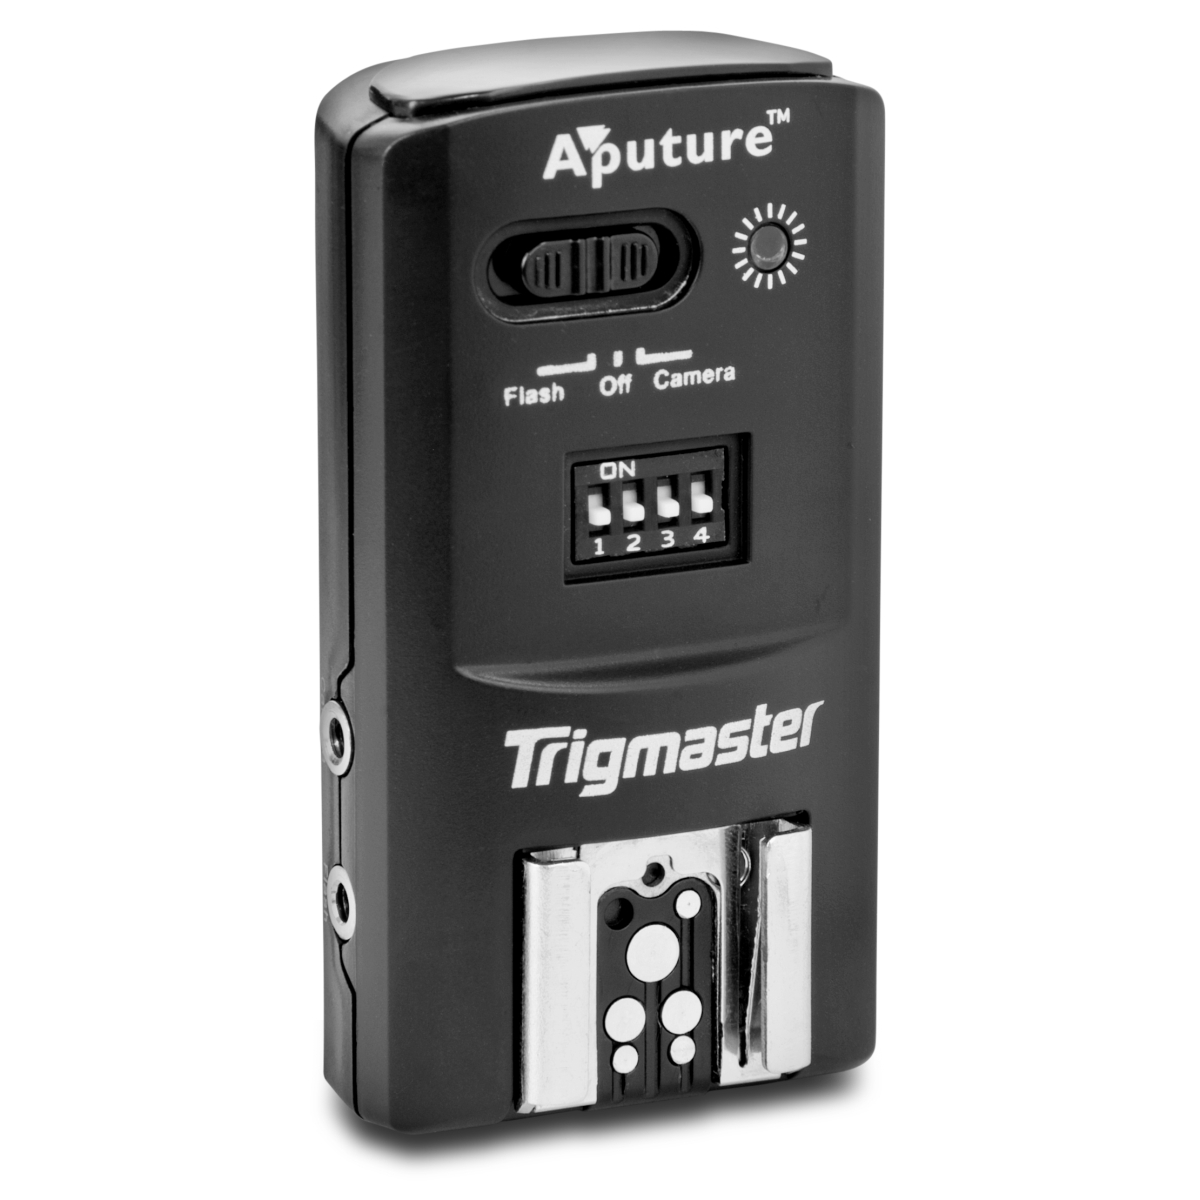 Aputure Trigmaster 2.4G MX/TX Receiver for Olympus